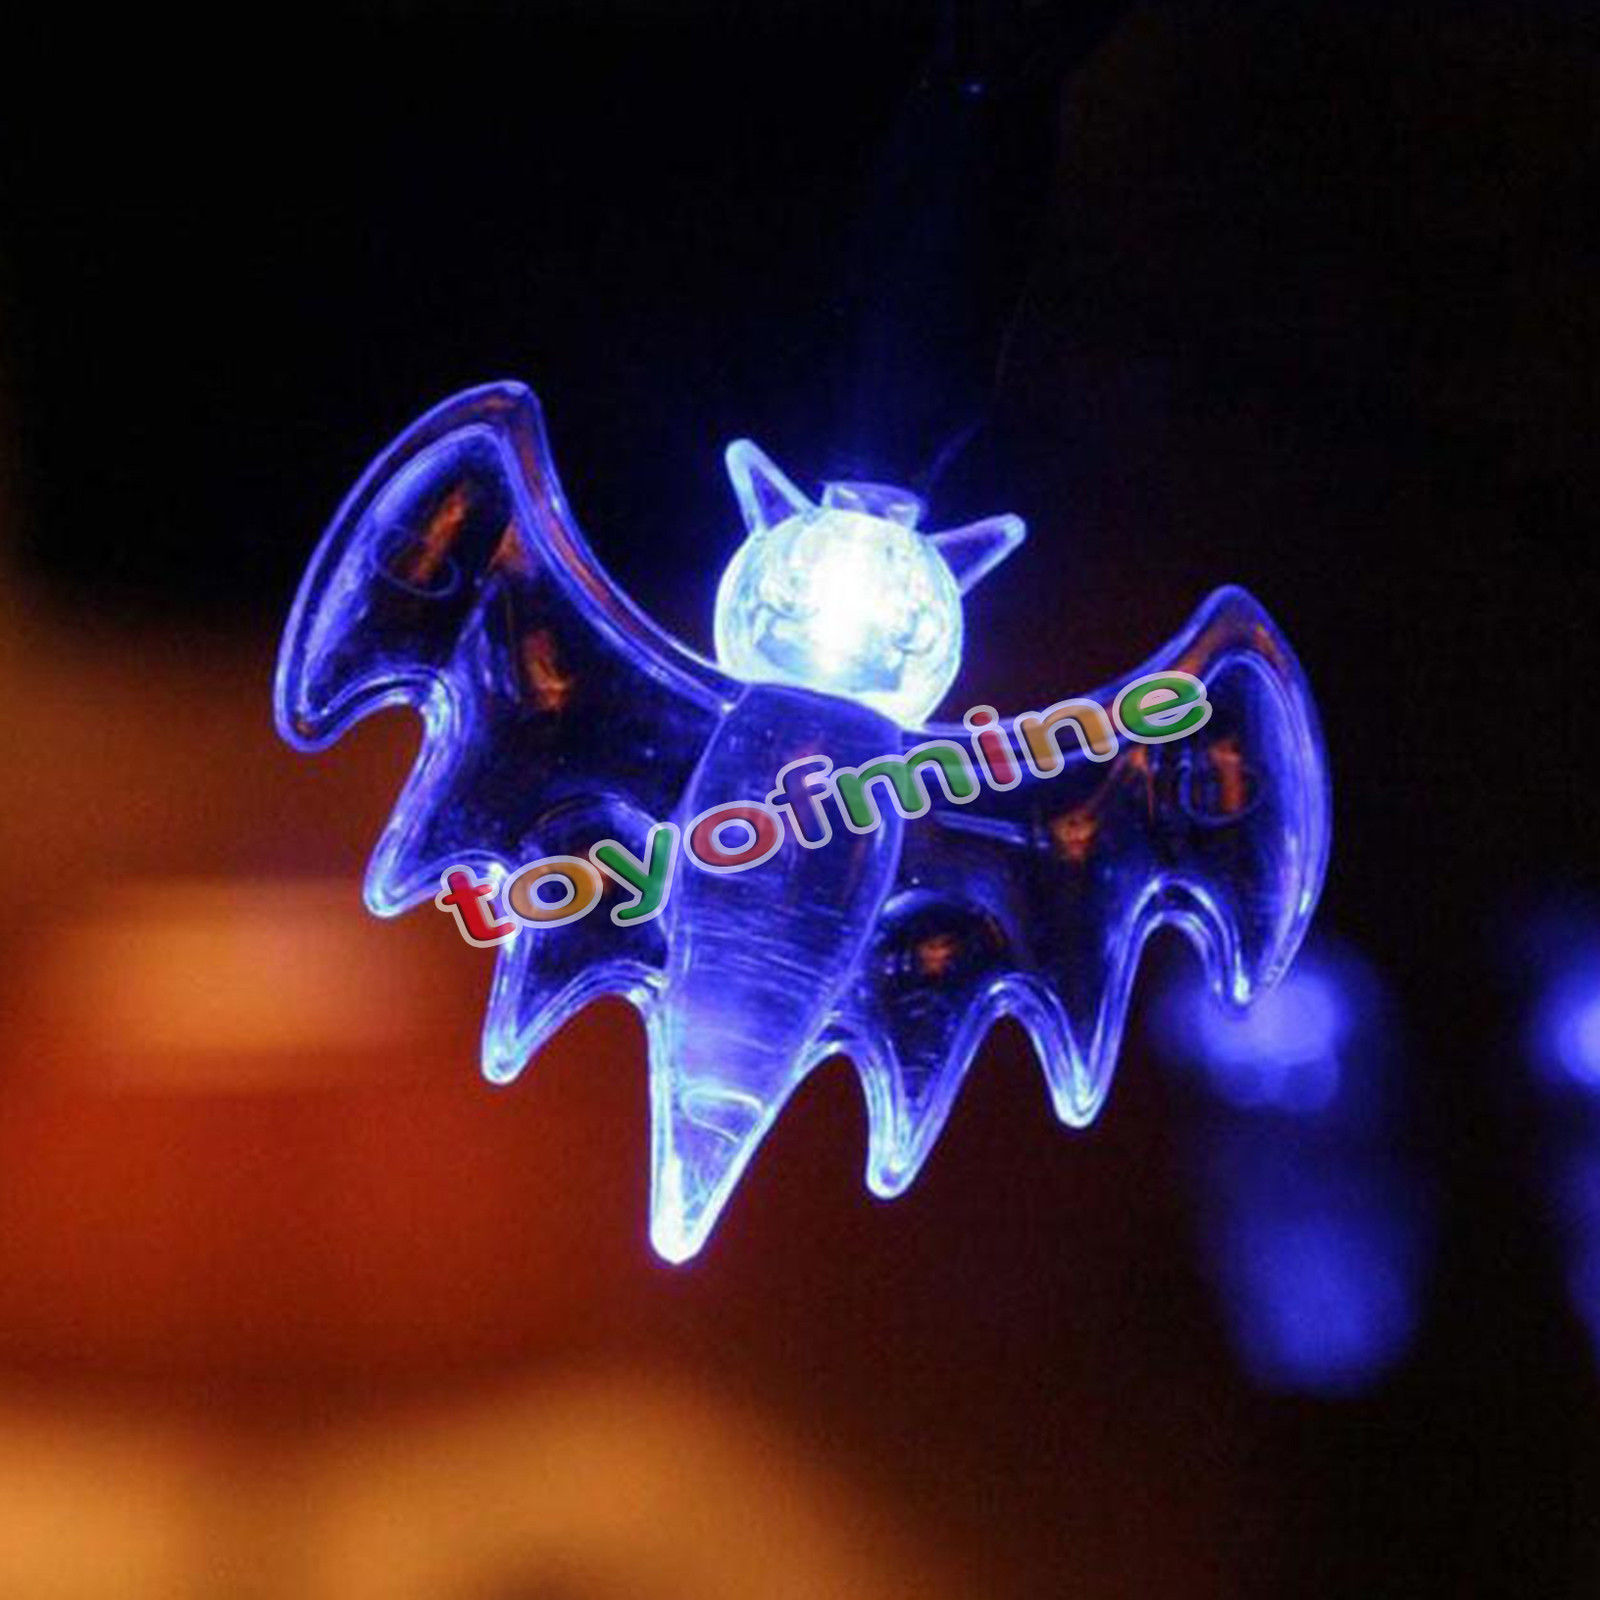 lighting strings 20 led fairy string lights 20 bat lights halloween decoration ligh xmas party decor